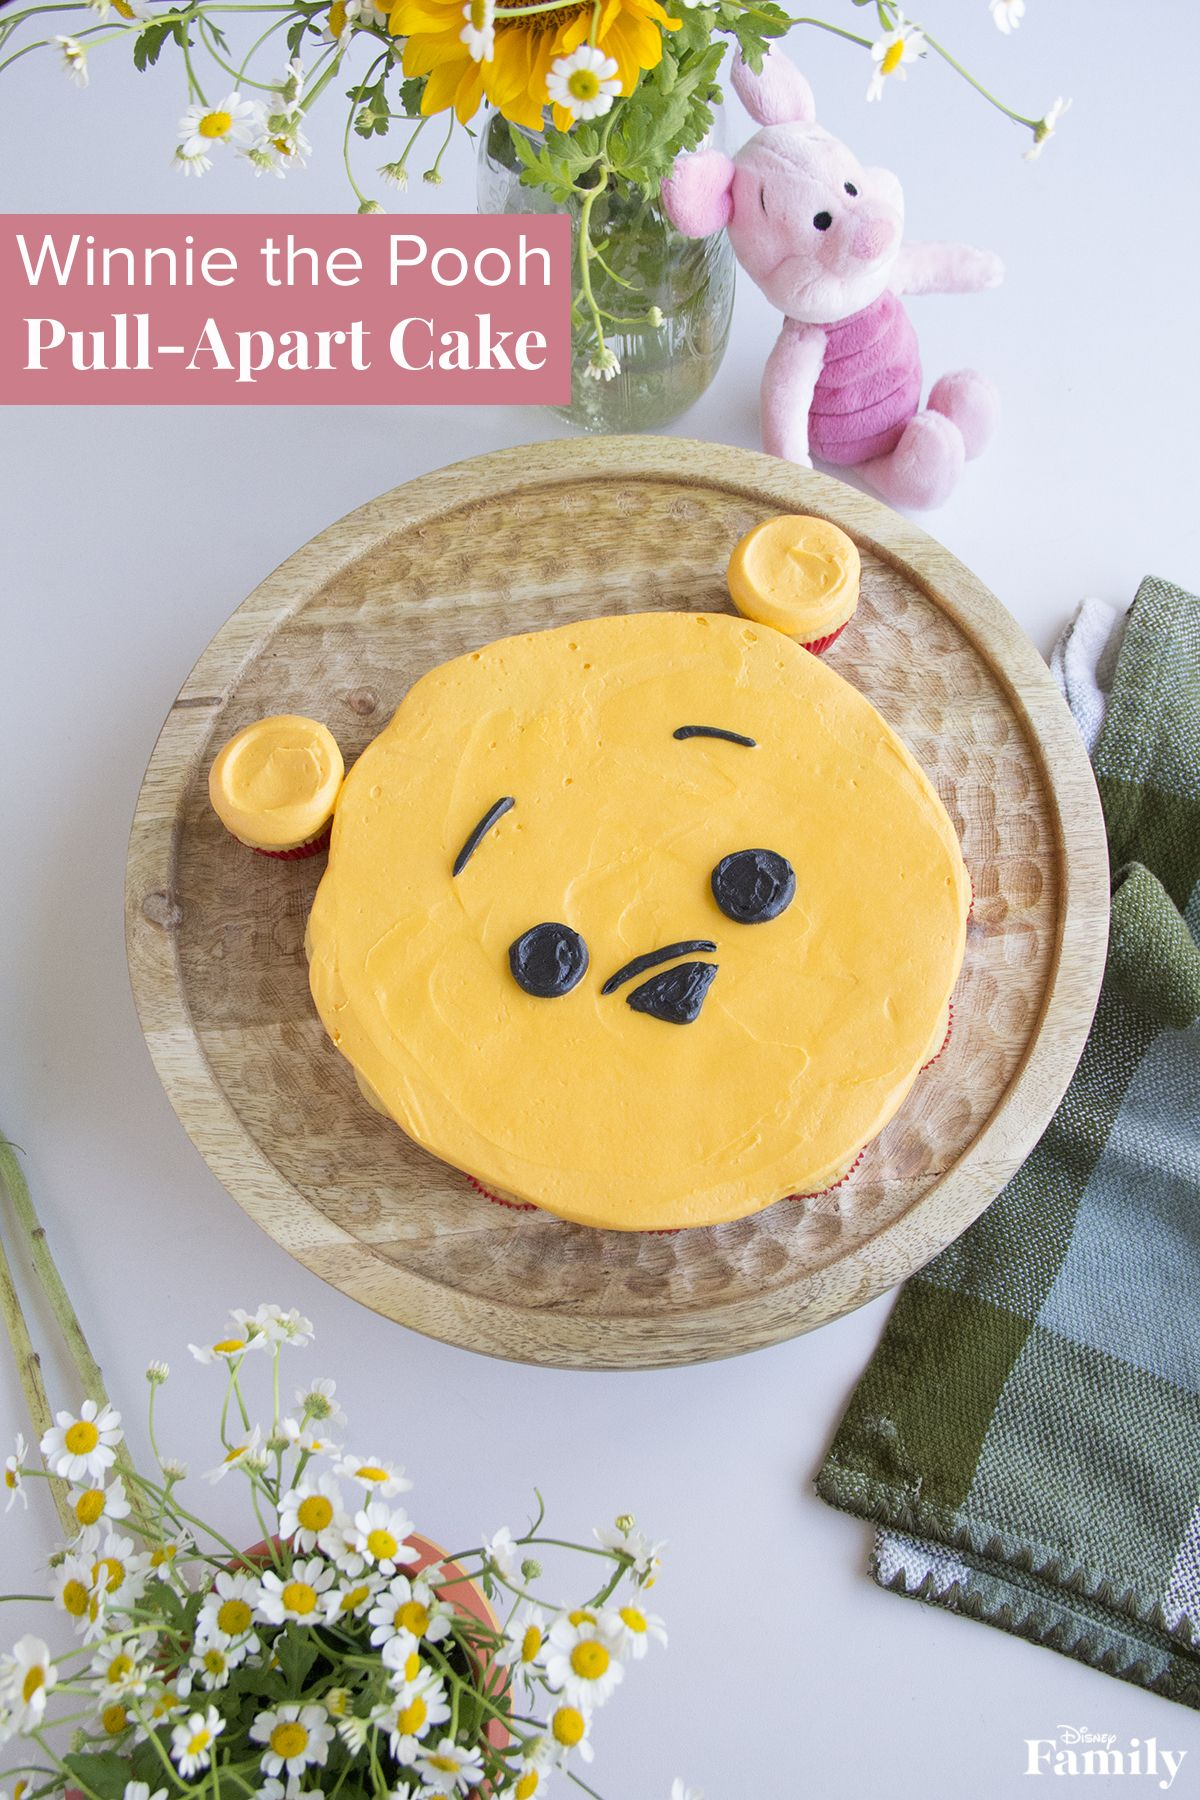 This Winnie the Pooh Pull-Apart Cake is straight from the Hundred Acre Wood, and will delight your family and friends. It's made by frosting miniature cupcakes together to create an adorable, little Pooh Tsum Tsum cake. Have more guests visiting? There's enough to go around. Add more cupcakes to make a larger cake so everyone can enjoy! Click for the Winnie the Pooh cake recipe.